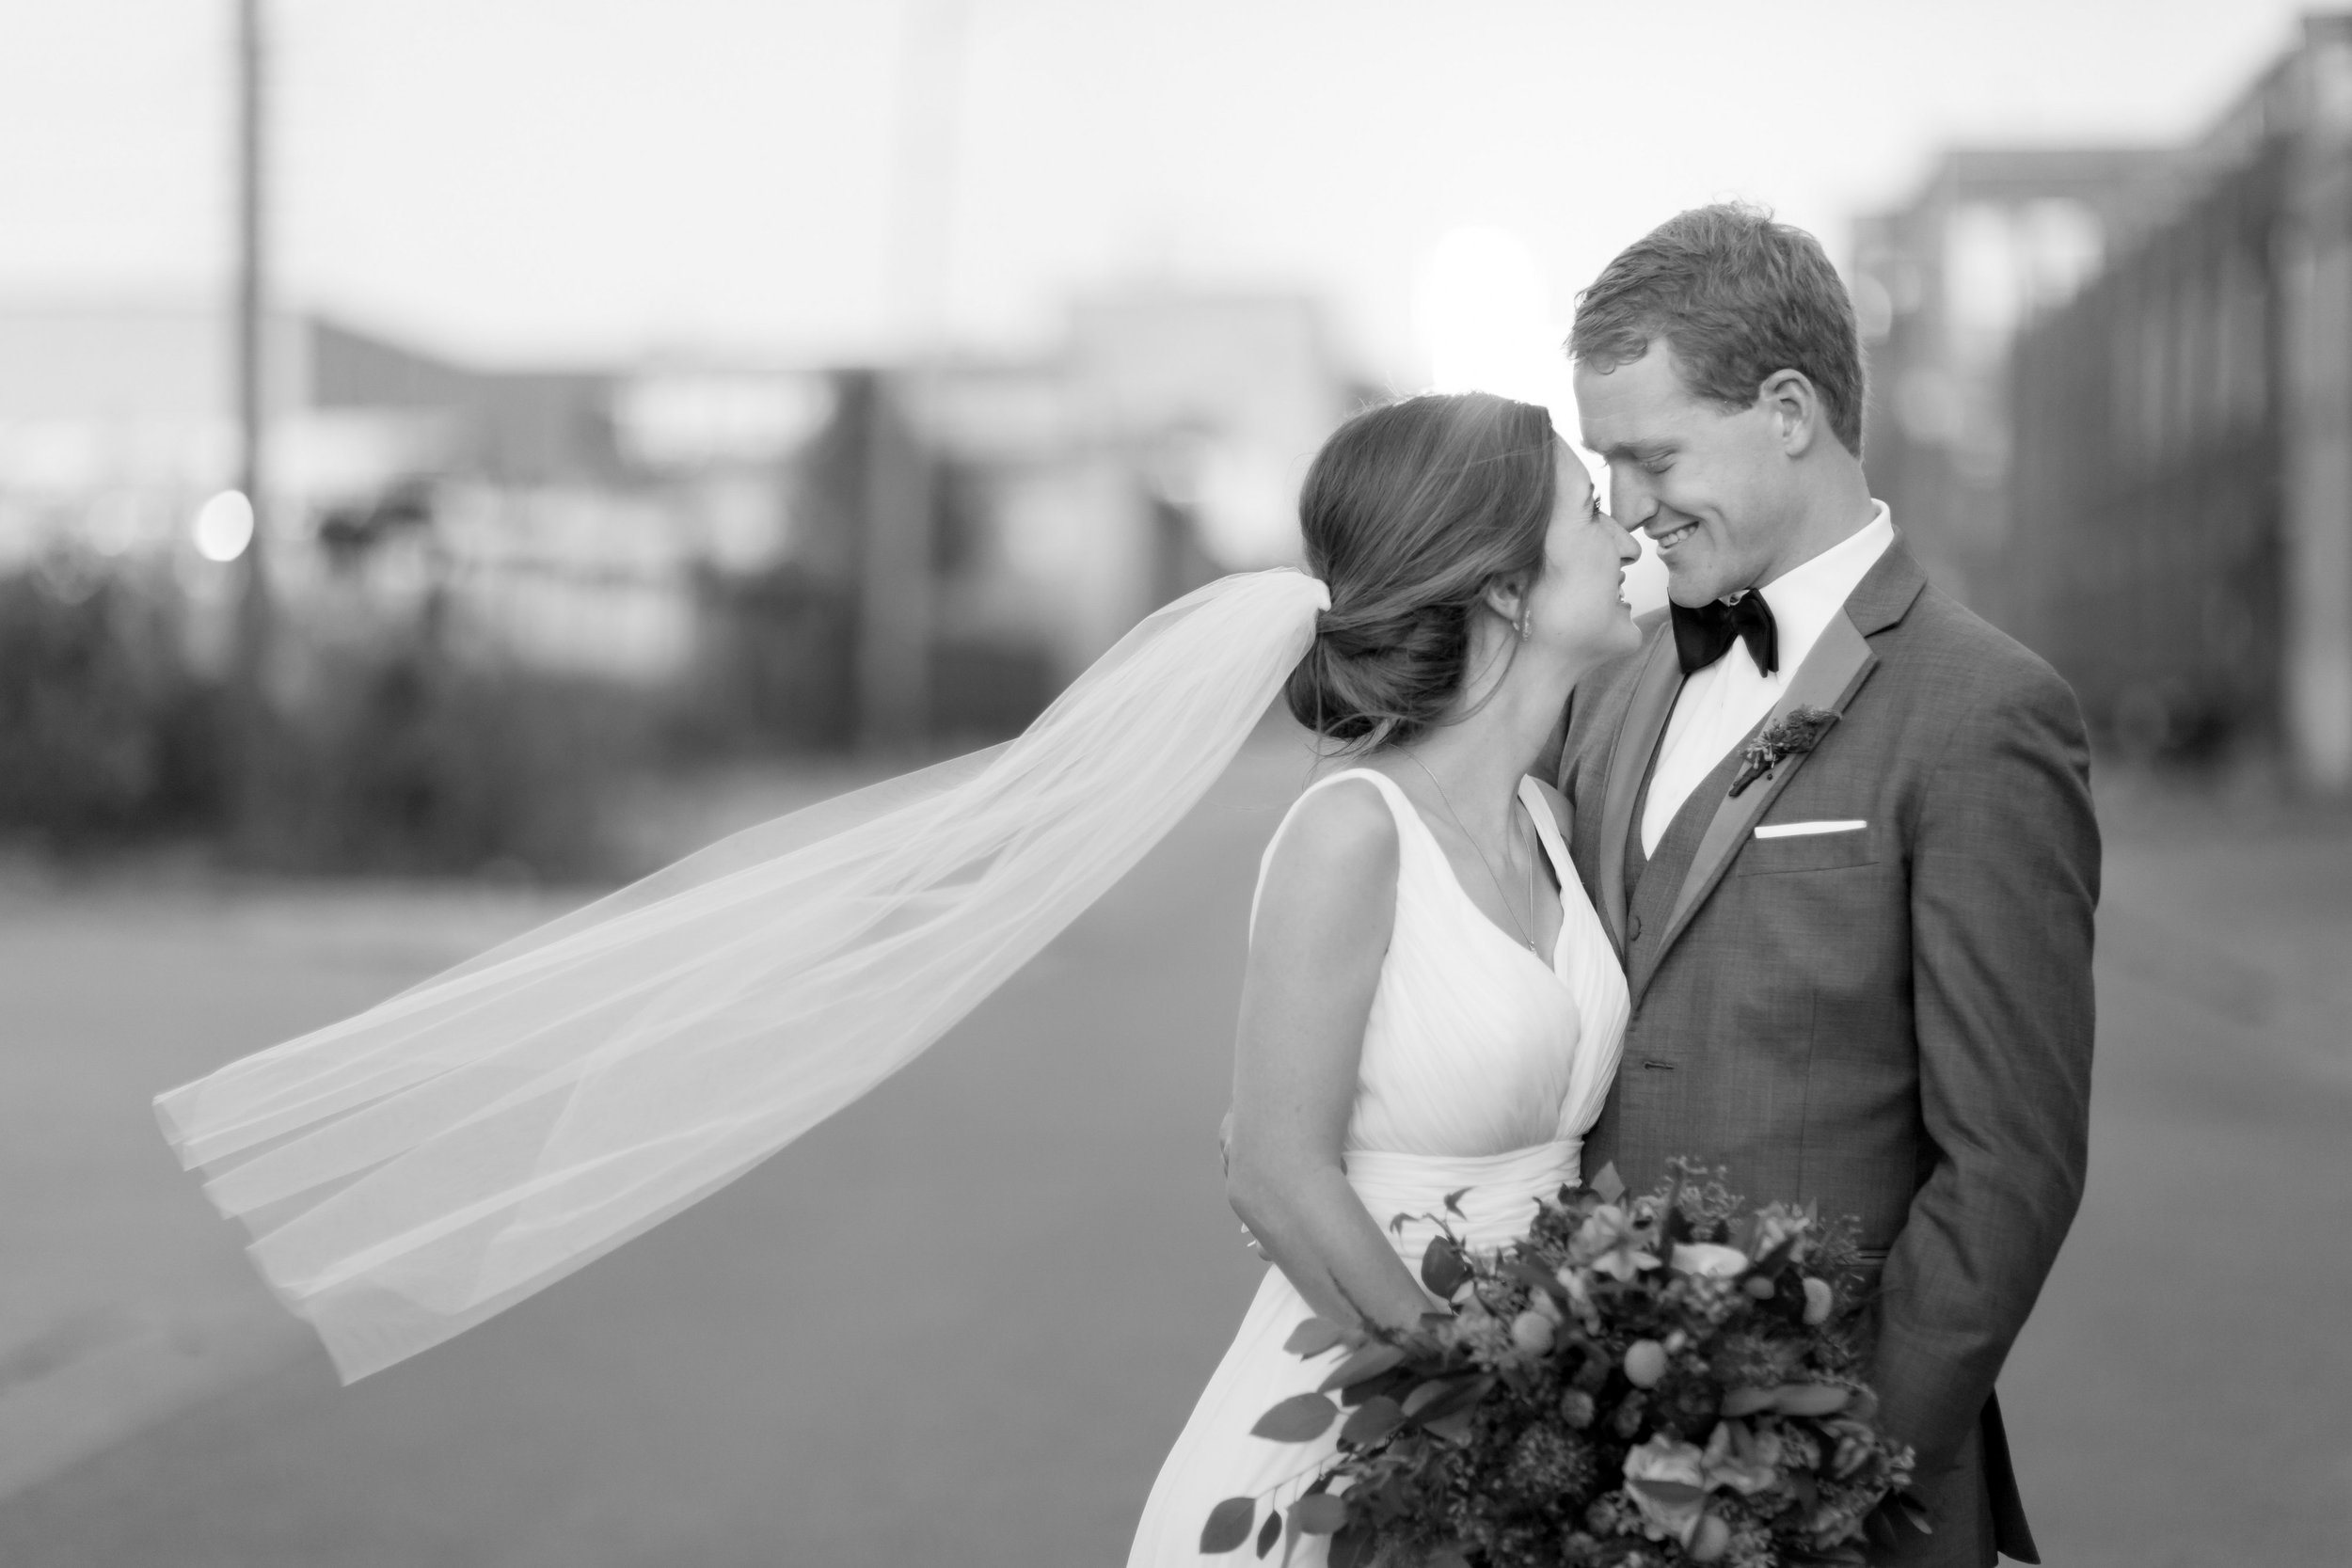 Holly and Mark Wedding Chicago IL-Bride and Groom-0200.jpg